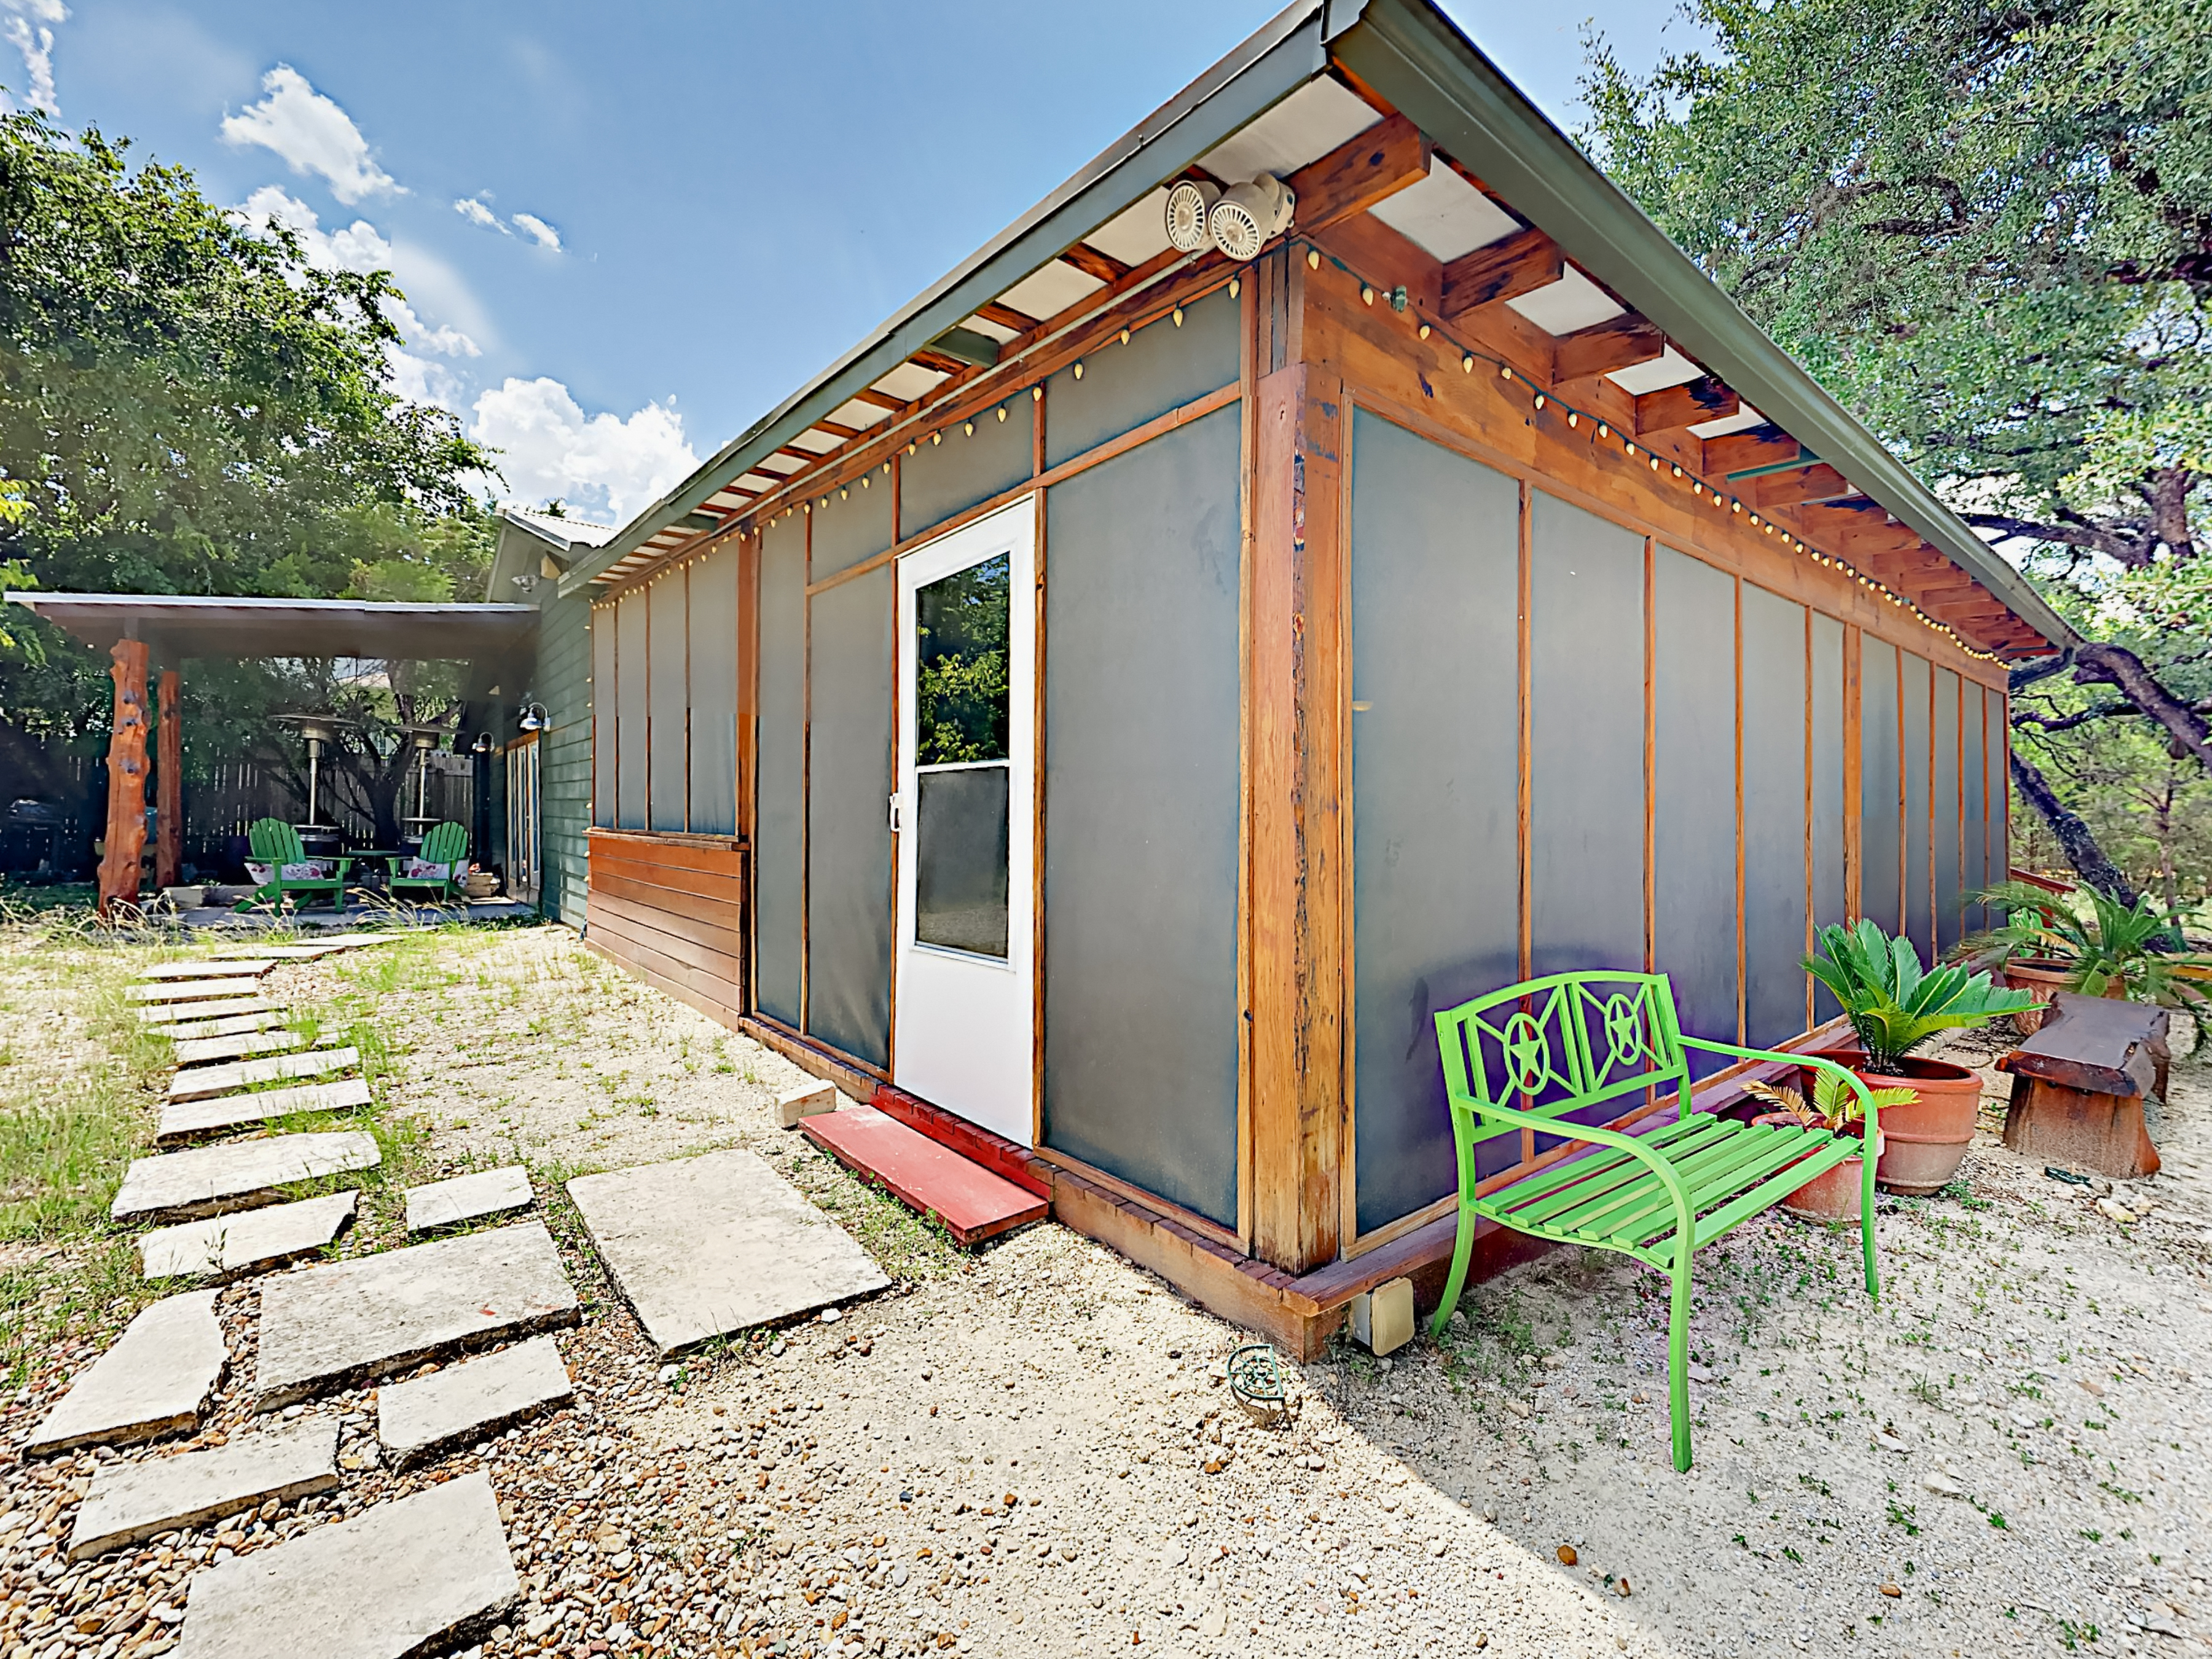 10202 wommack rd cabin ra162030 redawning for Austin cabin rentals